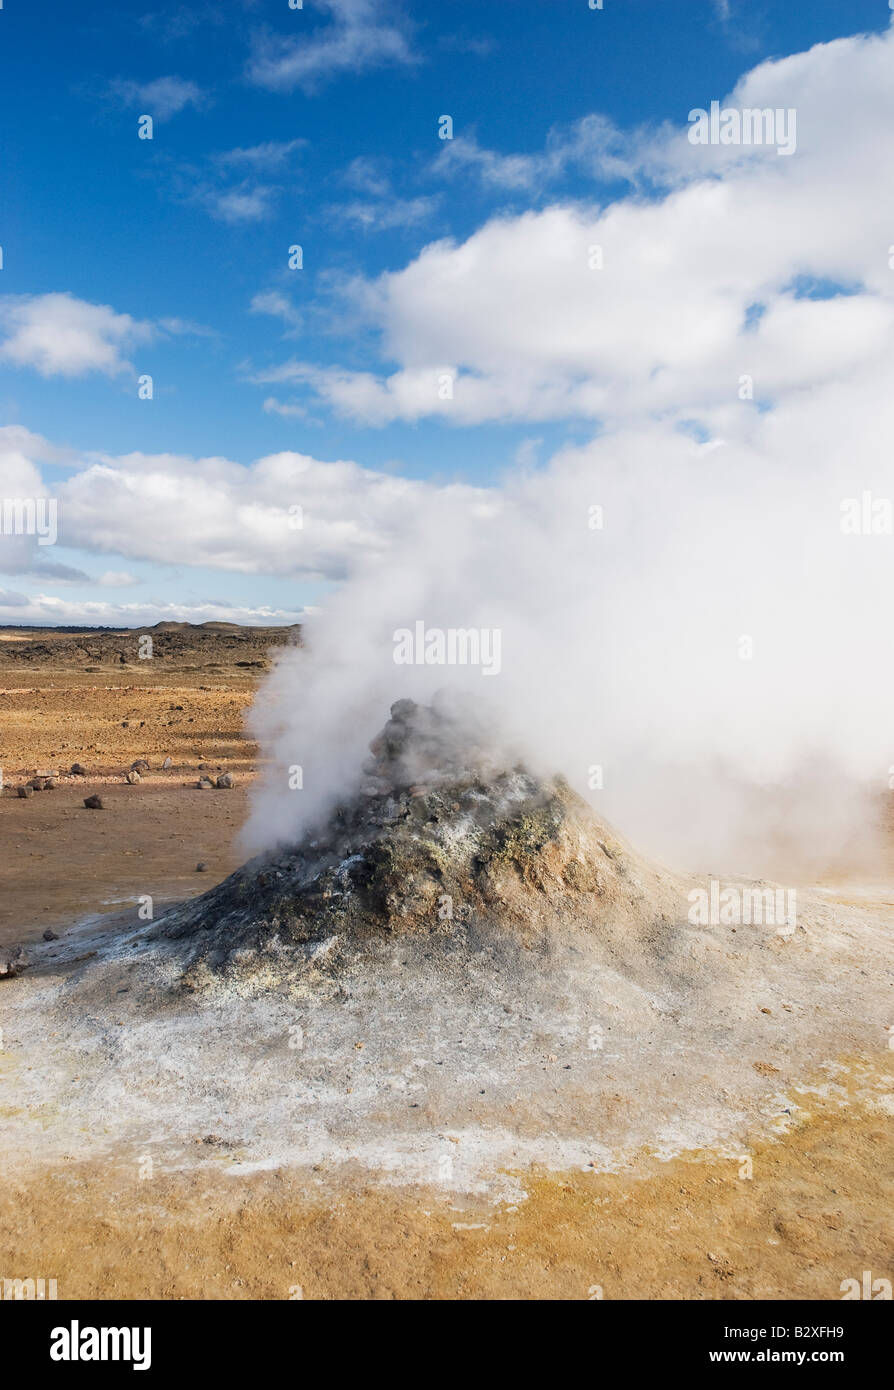 Geothermal steam vent in Iceland, Europe, vertical - Stock Image